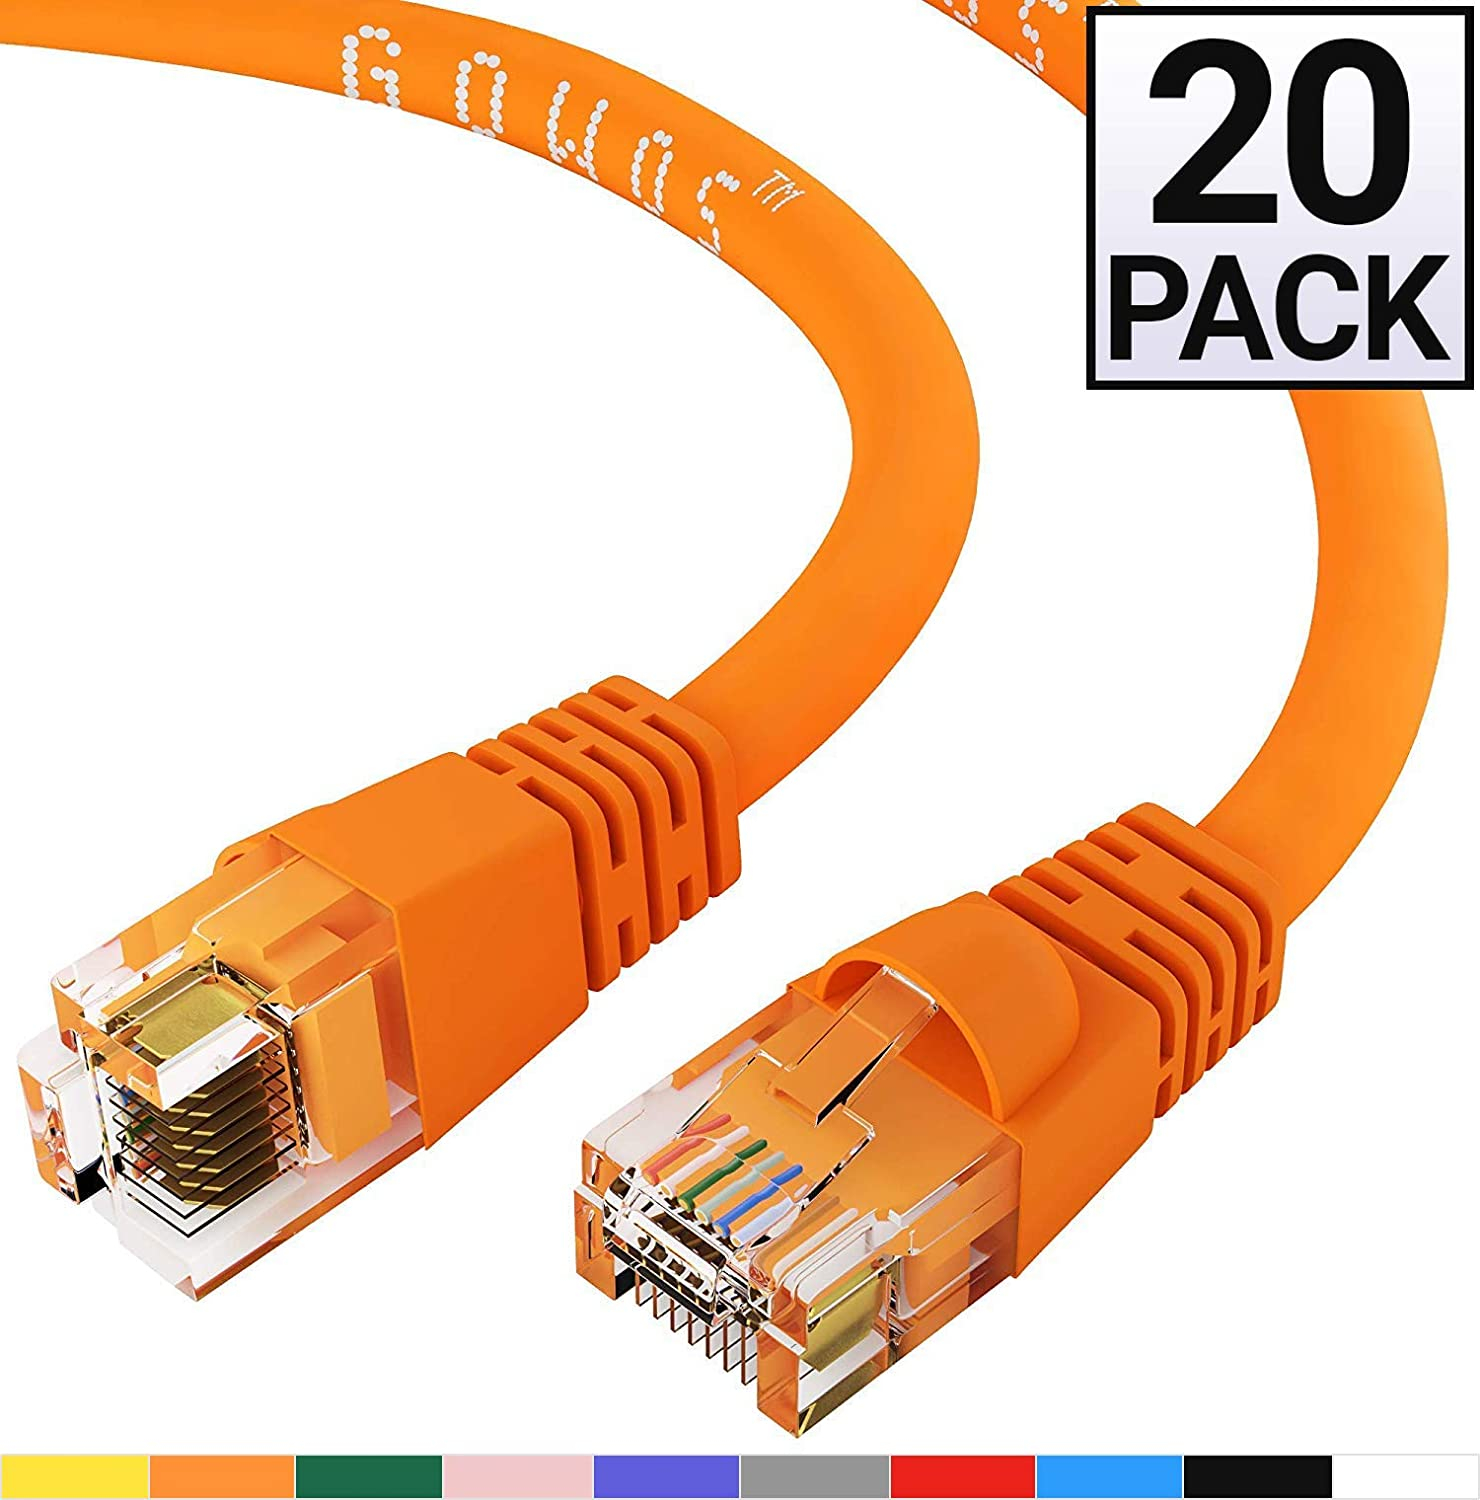 GOWOS 100-Pack Available in 28 Lengths and 10 Colors RJ45 10Gbps High Speed LAN Internet Patch Cord UTP 1 Feet - Orange Cat6 Ethernet Cable Computer Network Cable with Snagless Connector